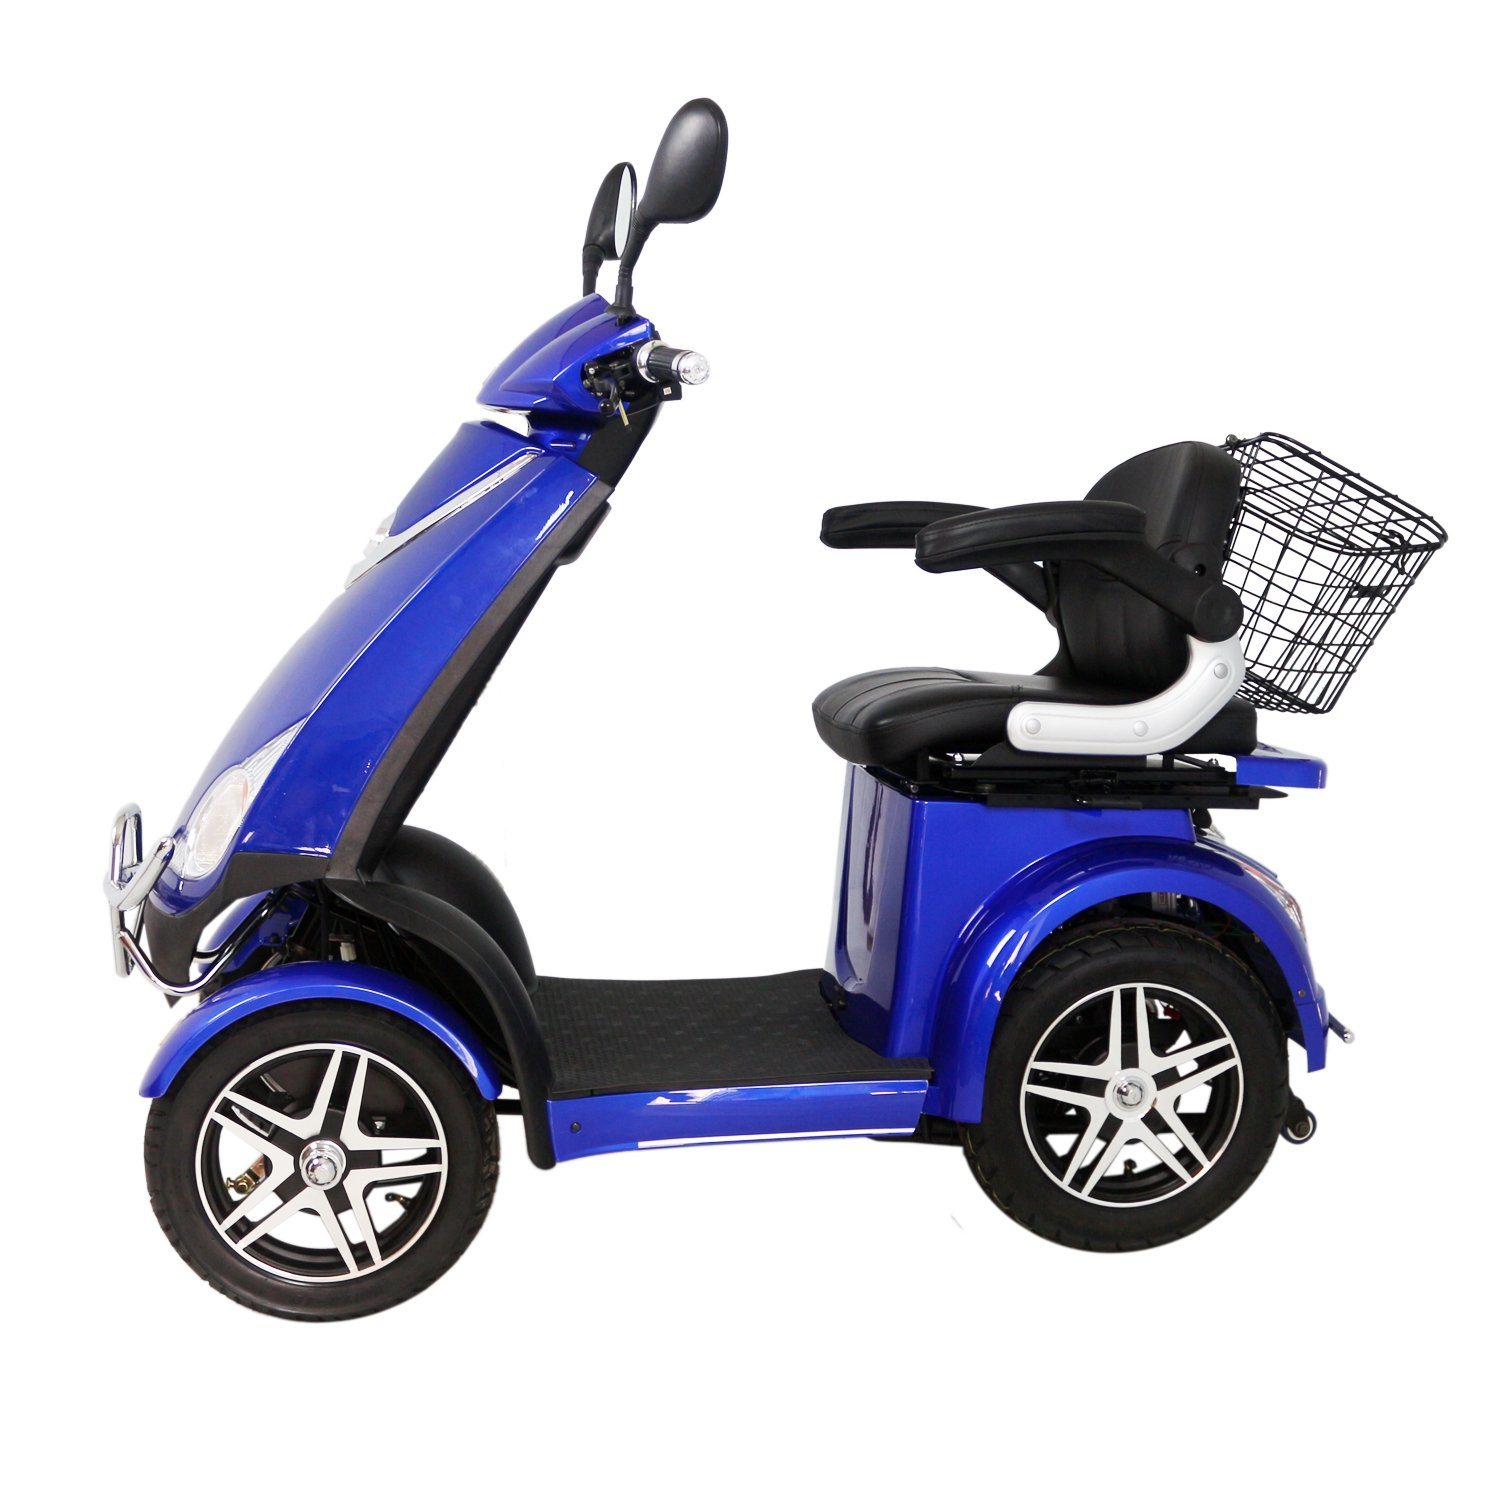 500W Motor Hot Sale Electric Scooter with Four Wheel for Elderly People